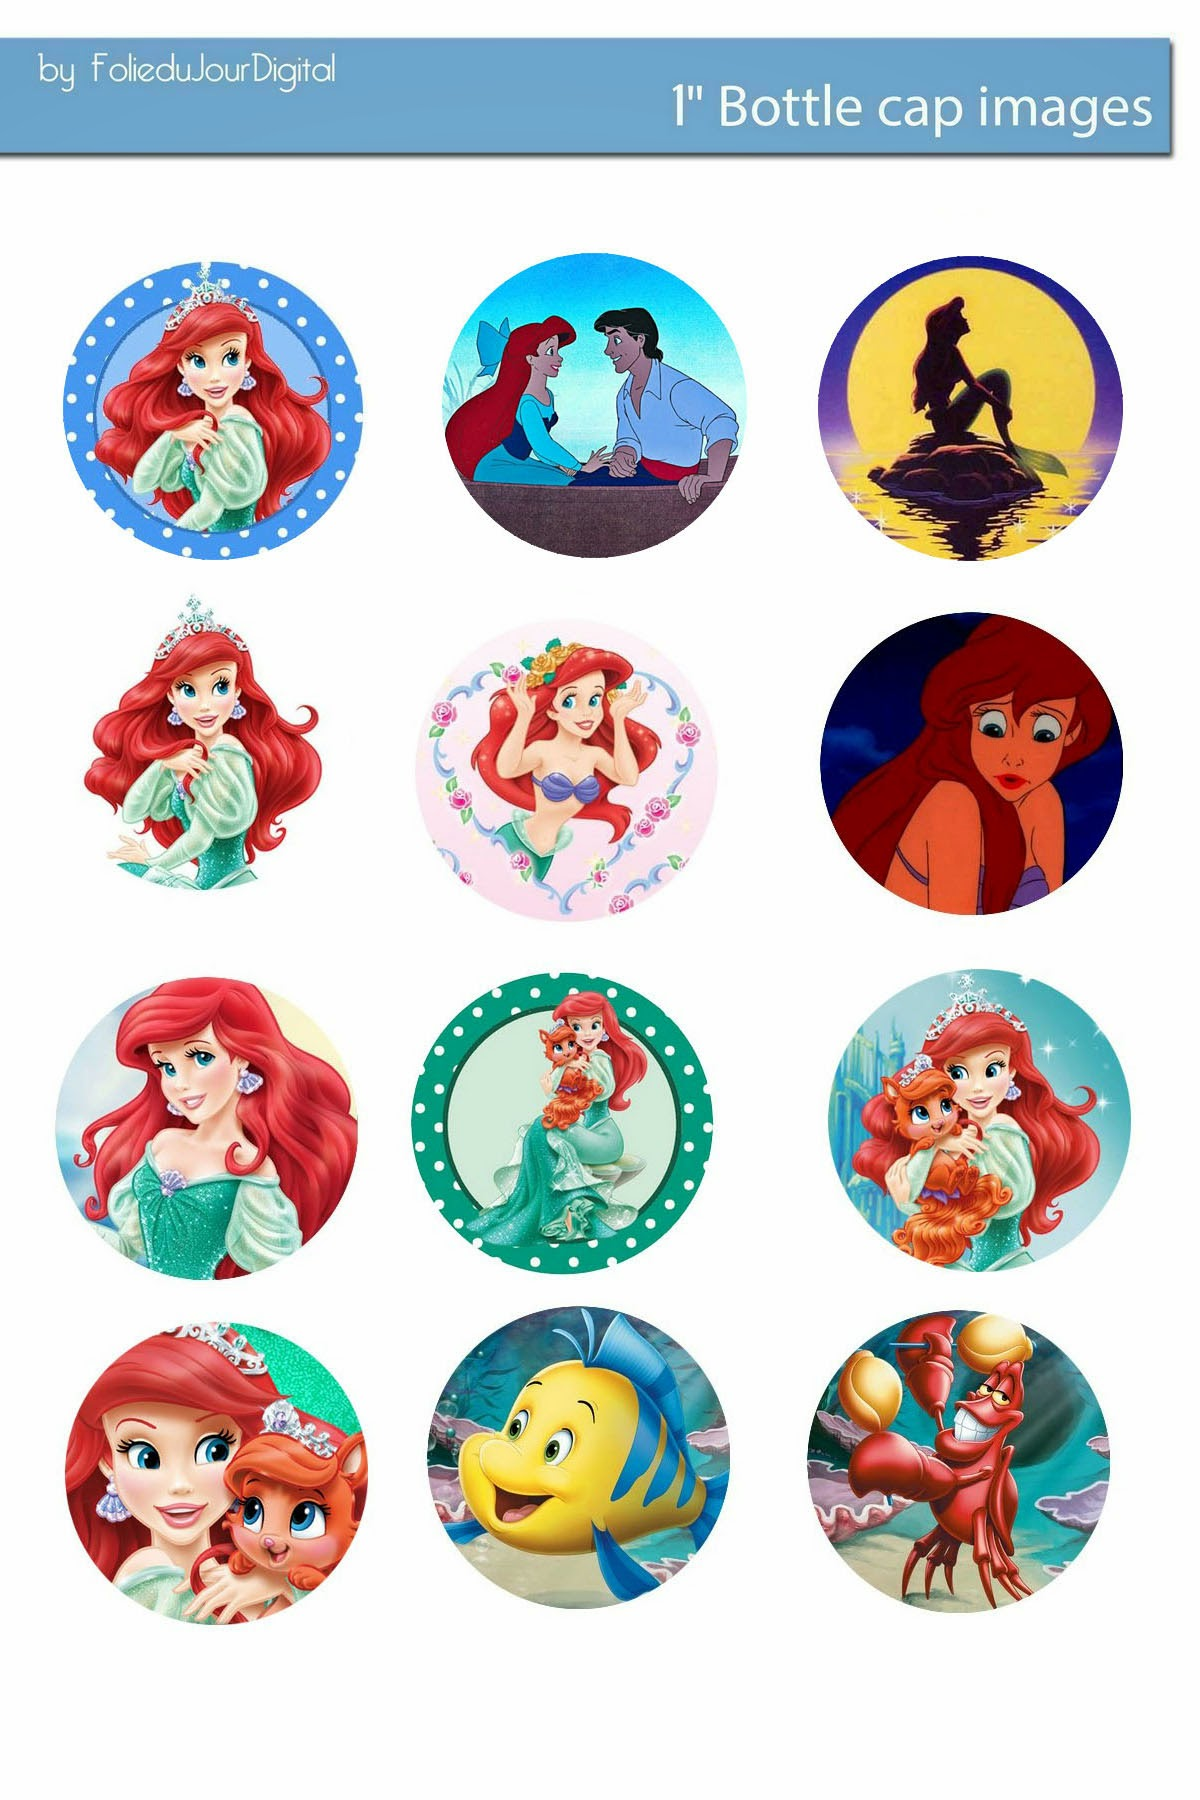 This is a picture of Universal Printable Bottlecap Images